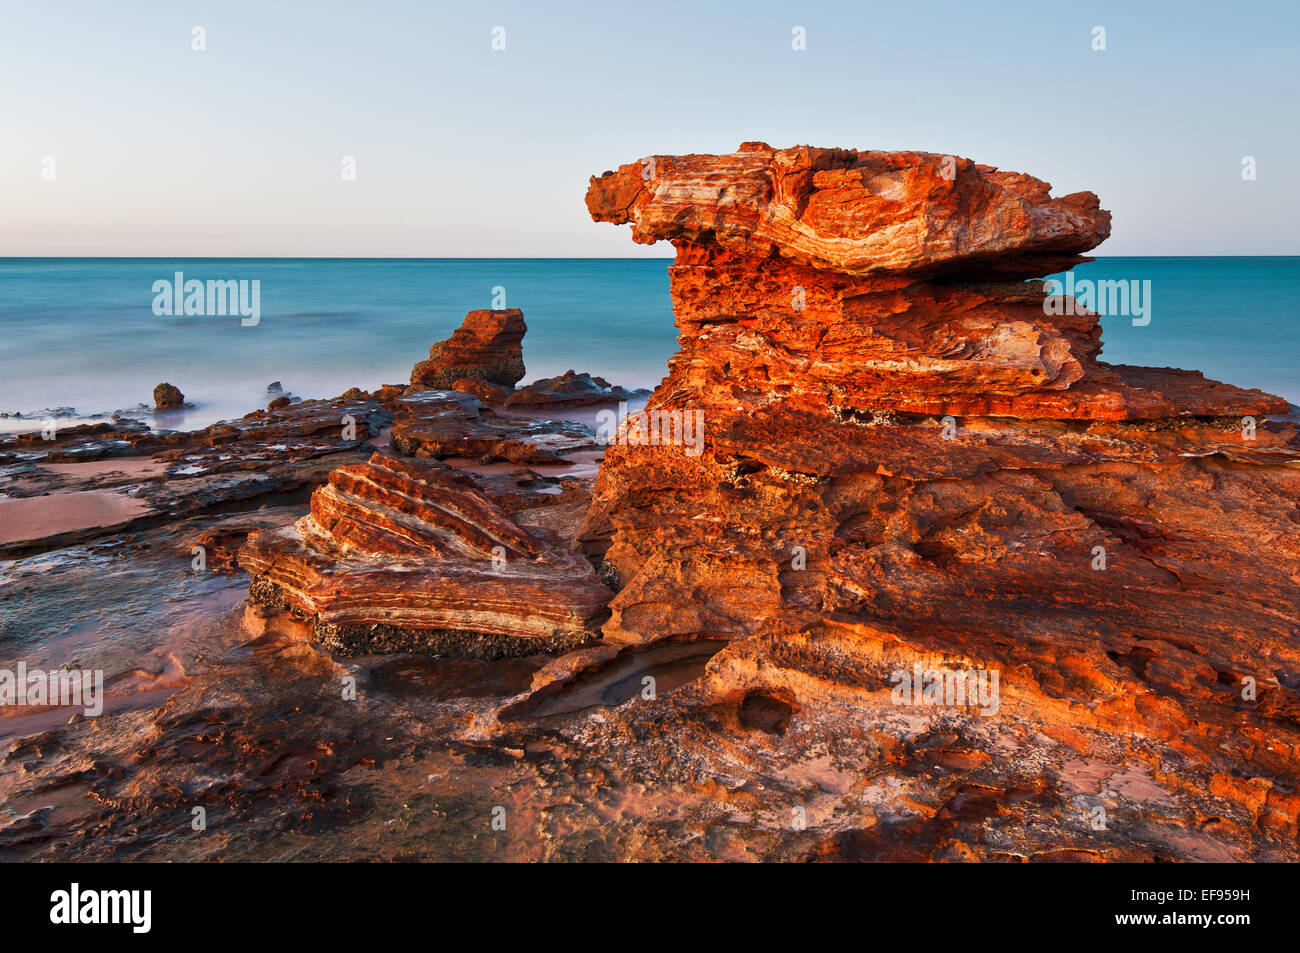 Rock formation in Roebuck Bay Broome. - Stock Image